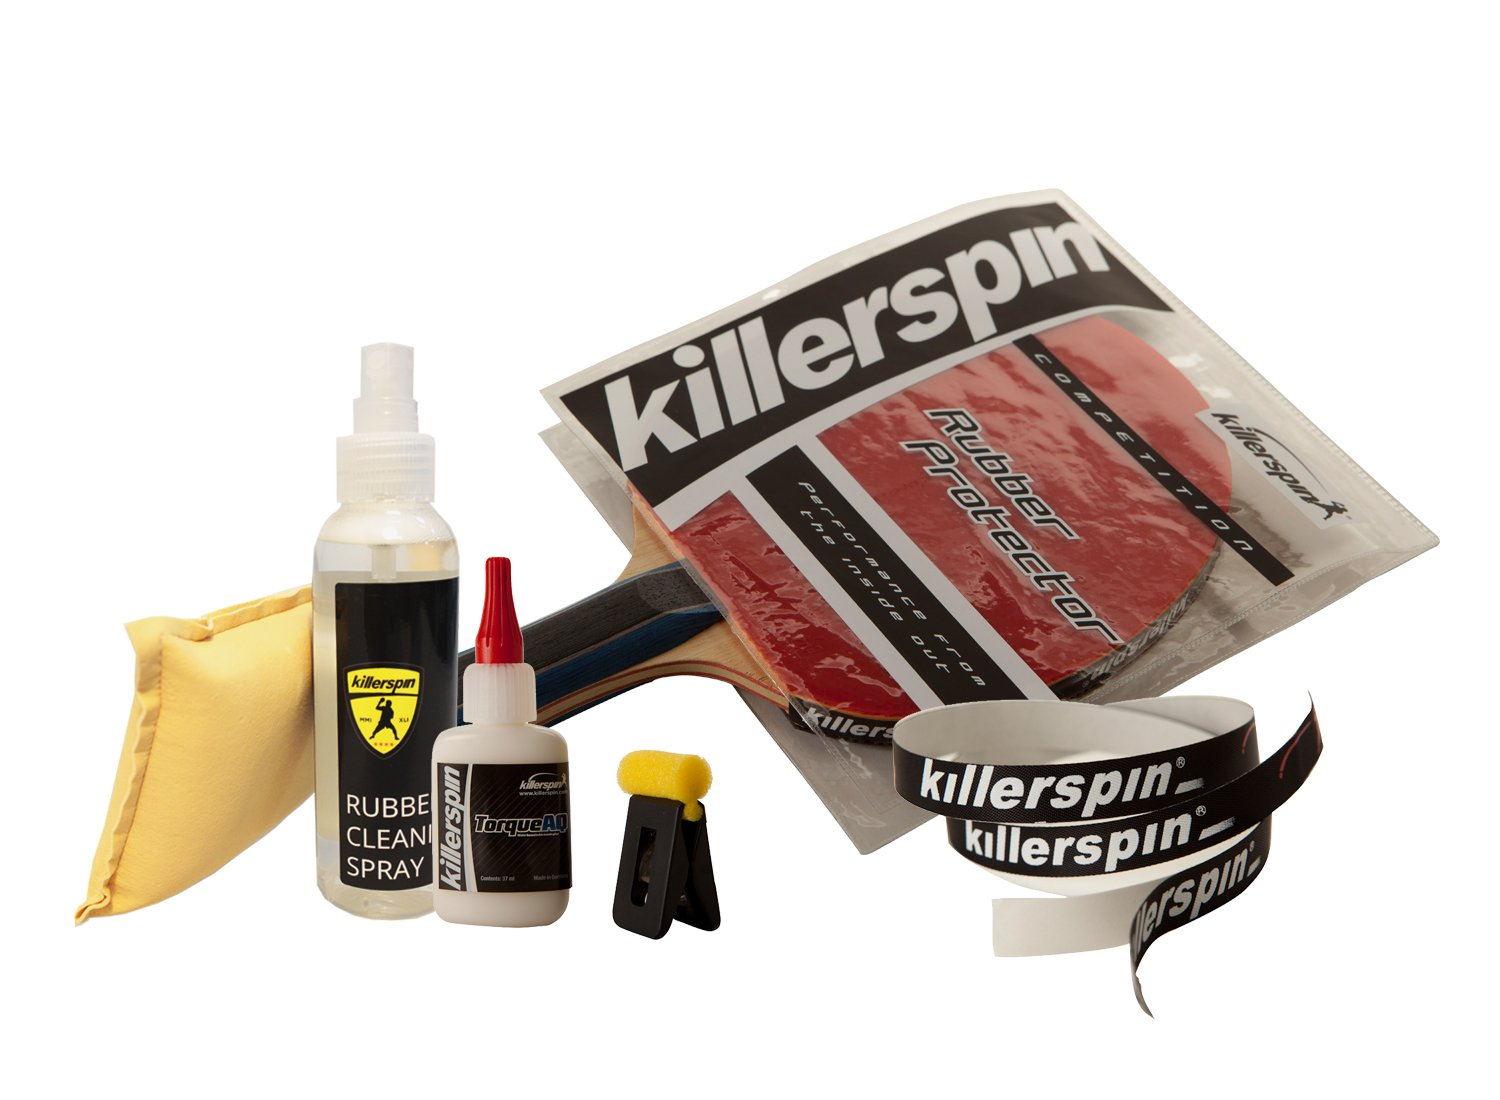 Killerspin Ping Pong Racket Care Bundle:rubber Cleaning Spray Kit, Rubber Protector, Side tape for 1 racket and Table Tennis Torque AQ Glue